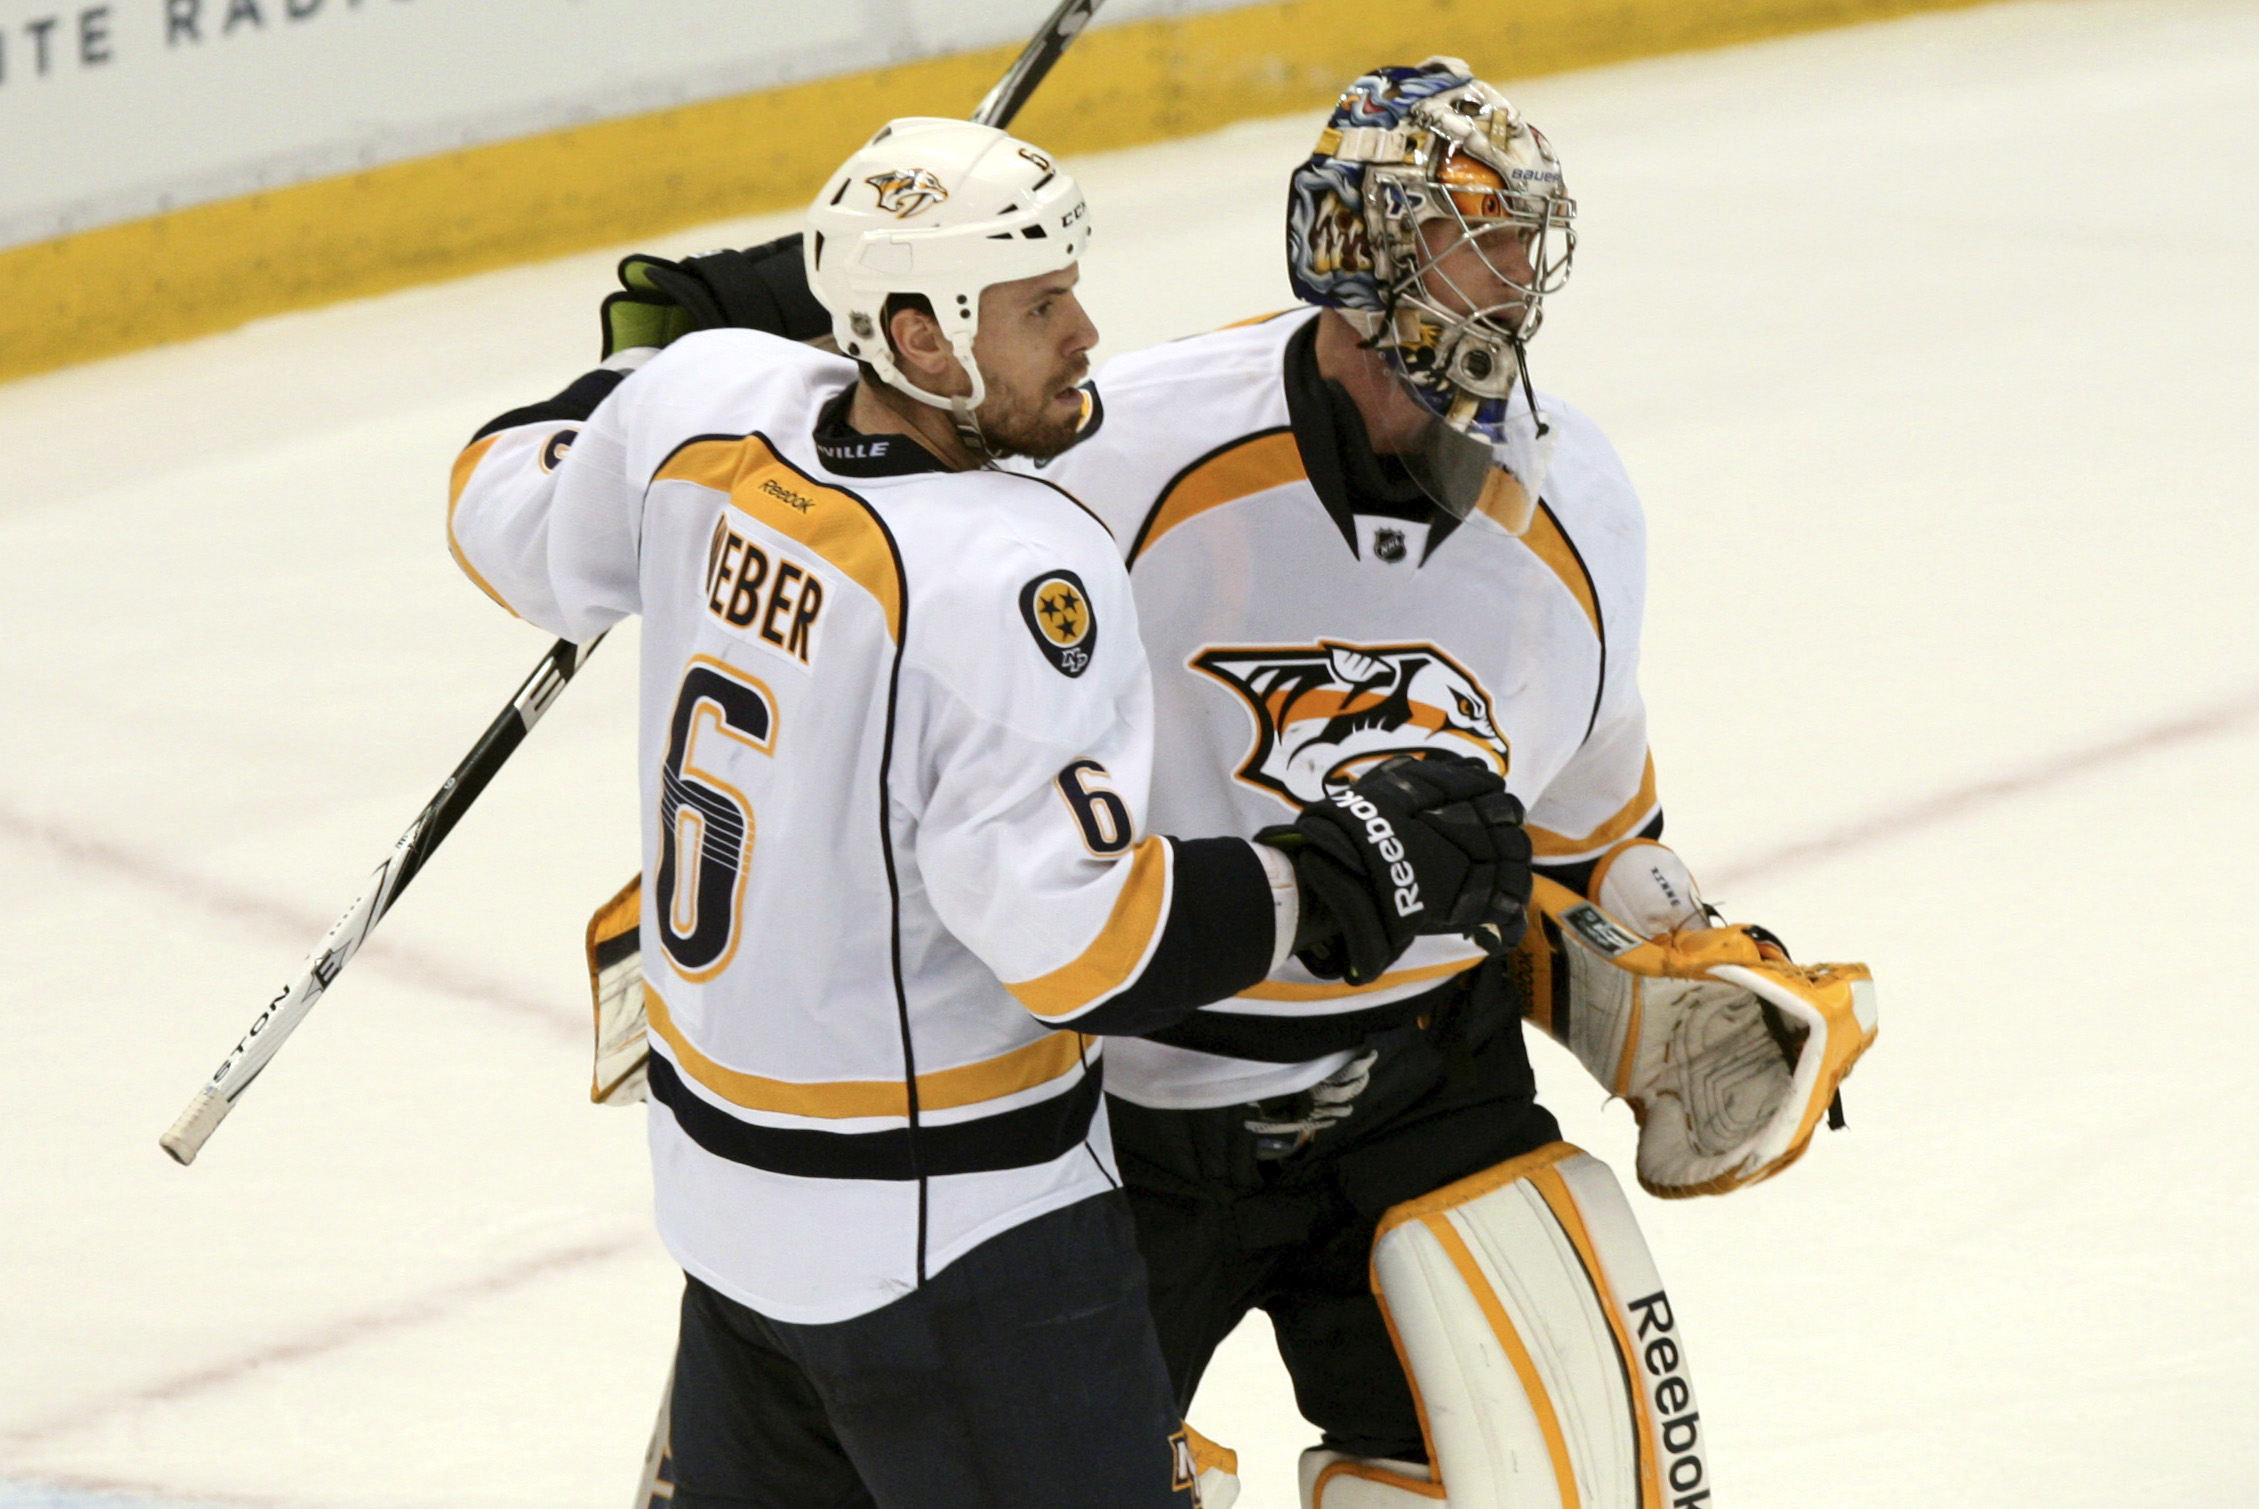 Shea Weber delivered another scary-good performance for the Predators in Game 3.